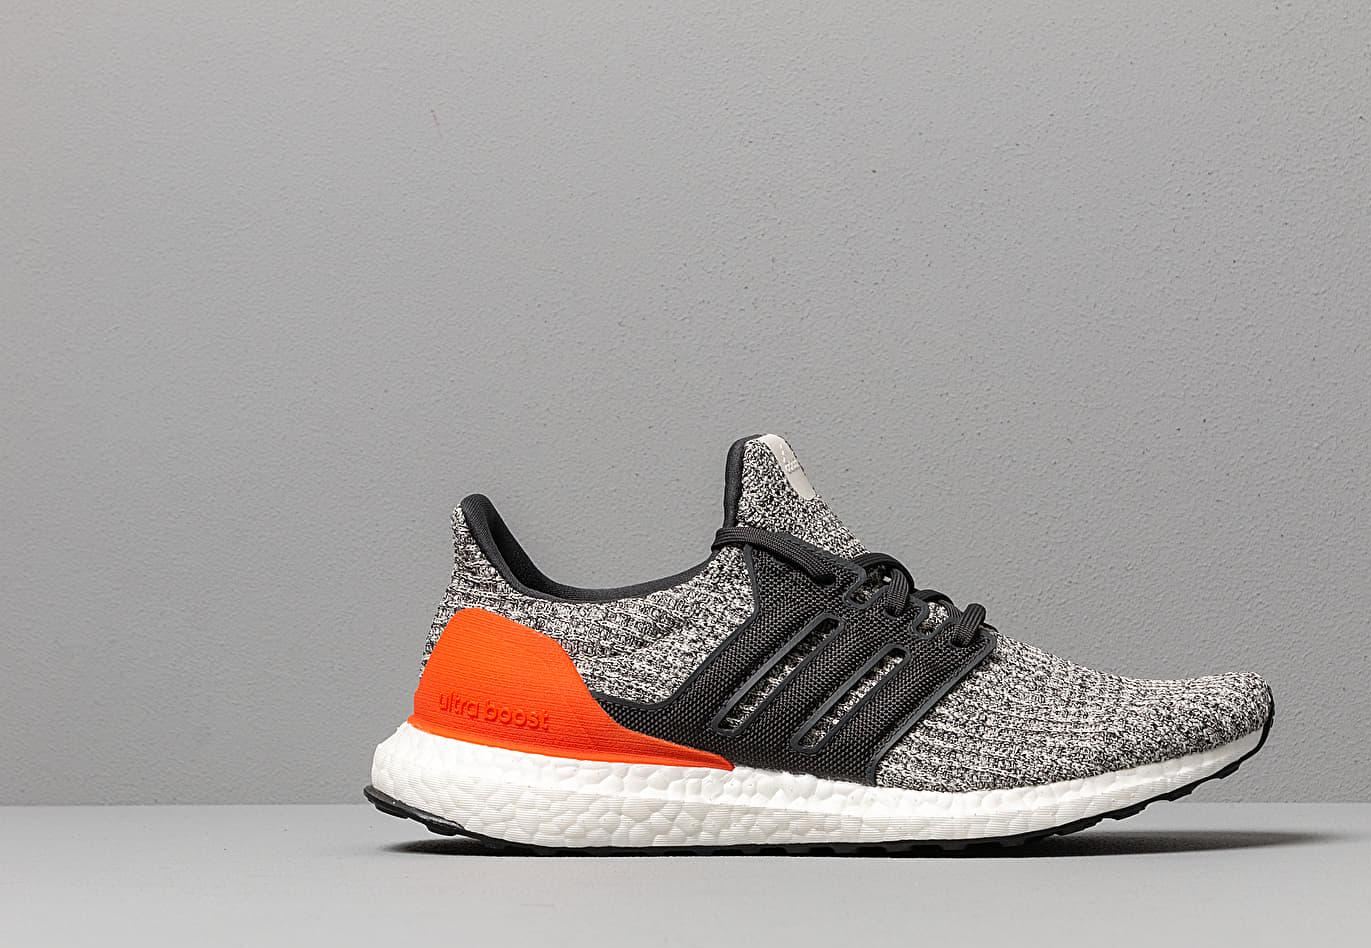 9769984ba5f Adidas Originals - White Ultraboost Shoes for Men - Lyst. View fullscreen